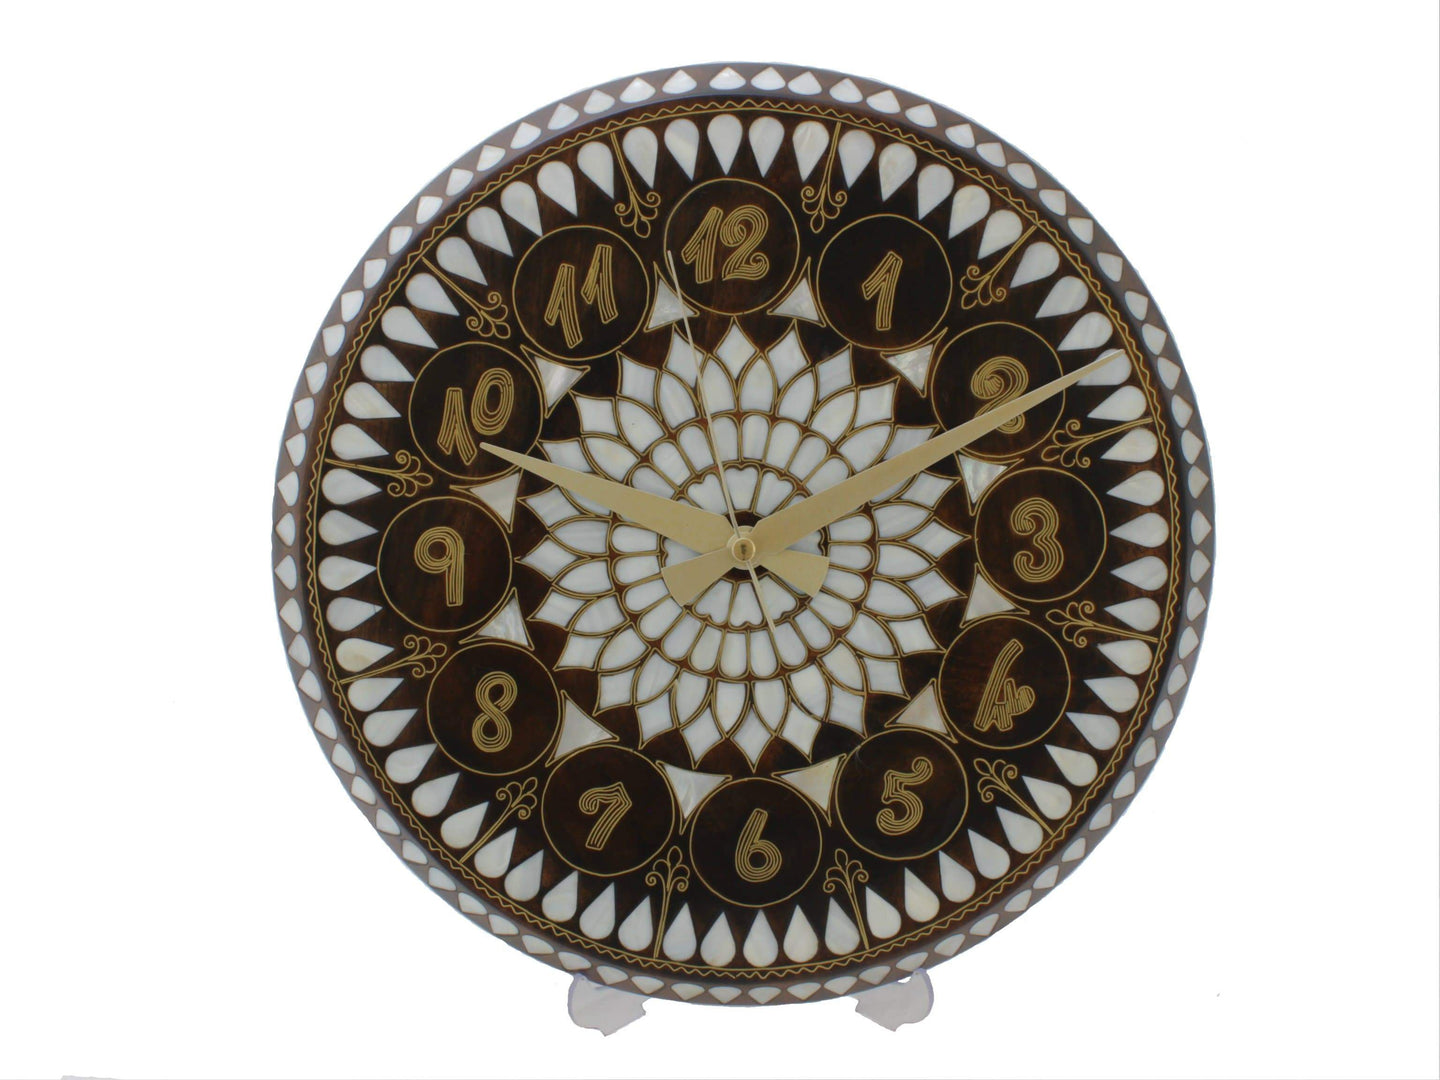 Mother of Pearl and Brass Wire Inlaid Wooden Wall Clock